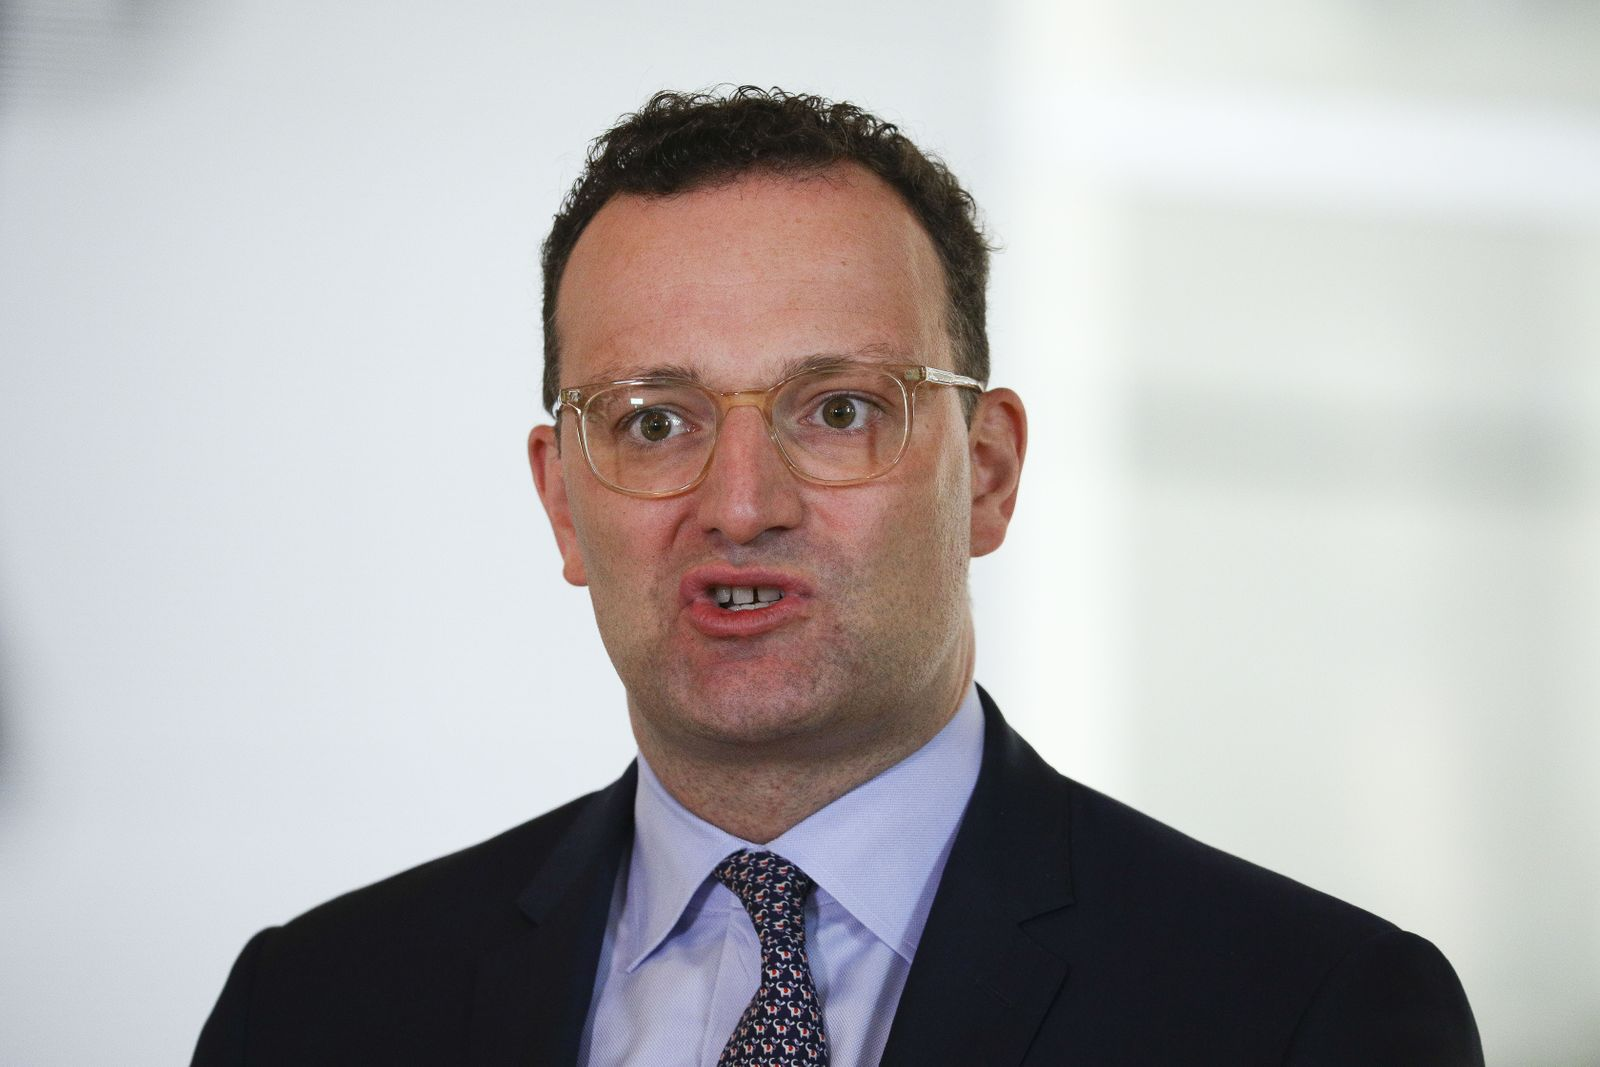 Minister Spahn presser over the health situation, Berlin, Germany - 03 Jul 2020